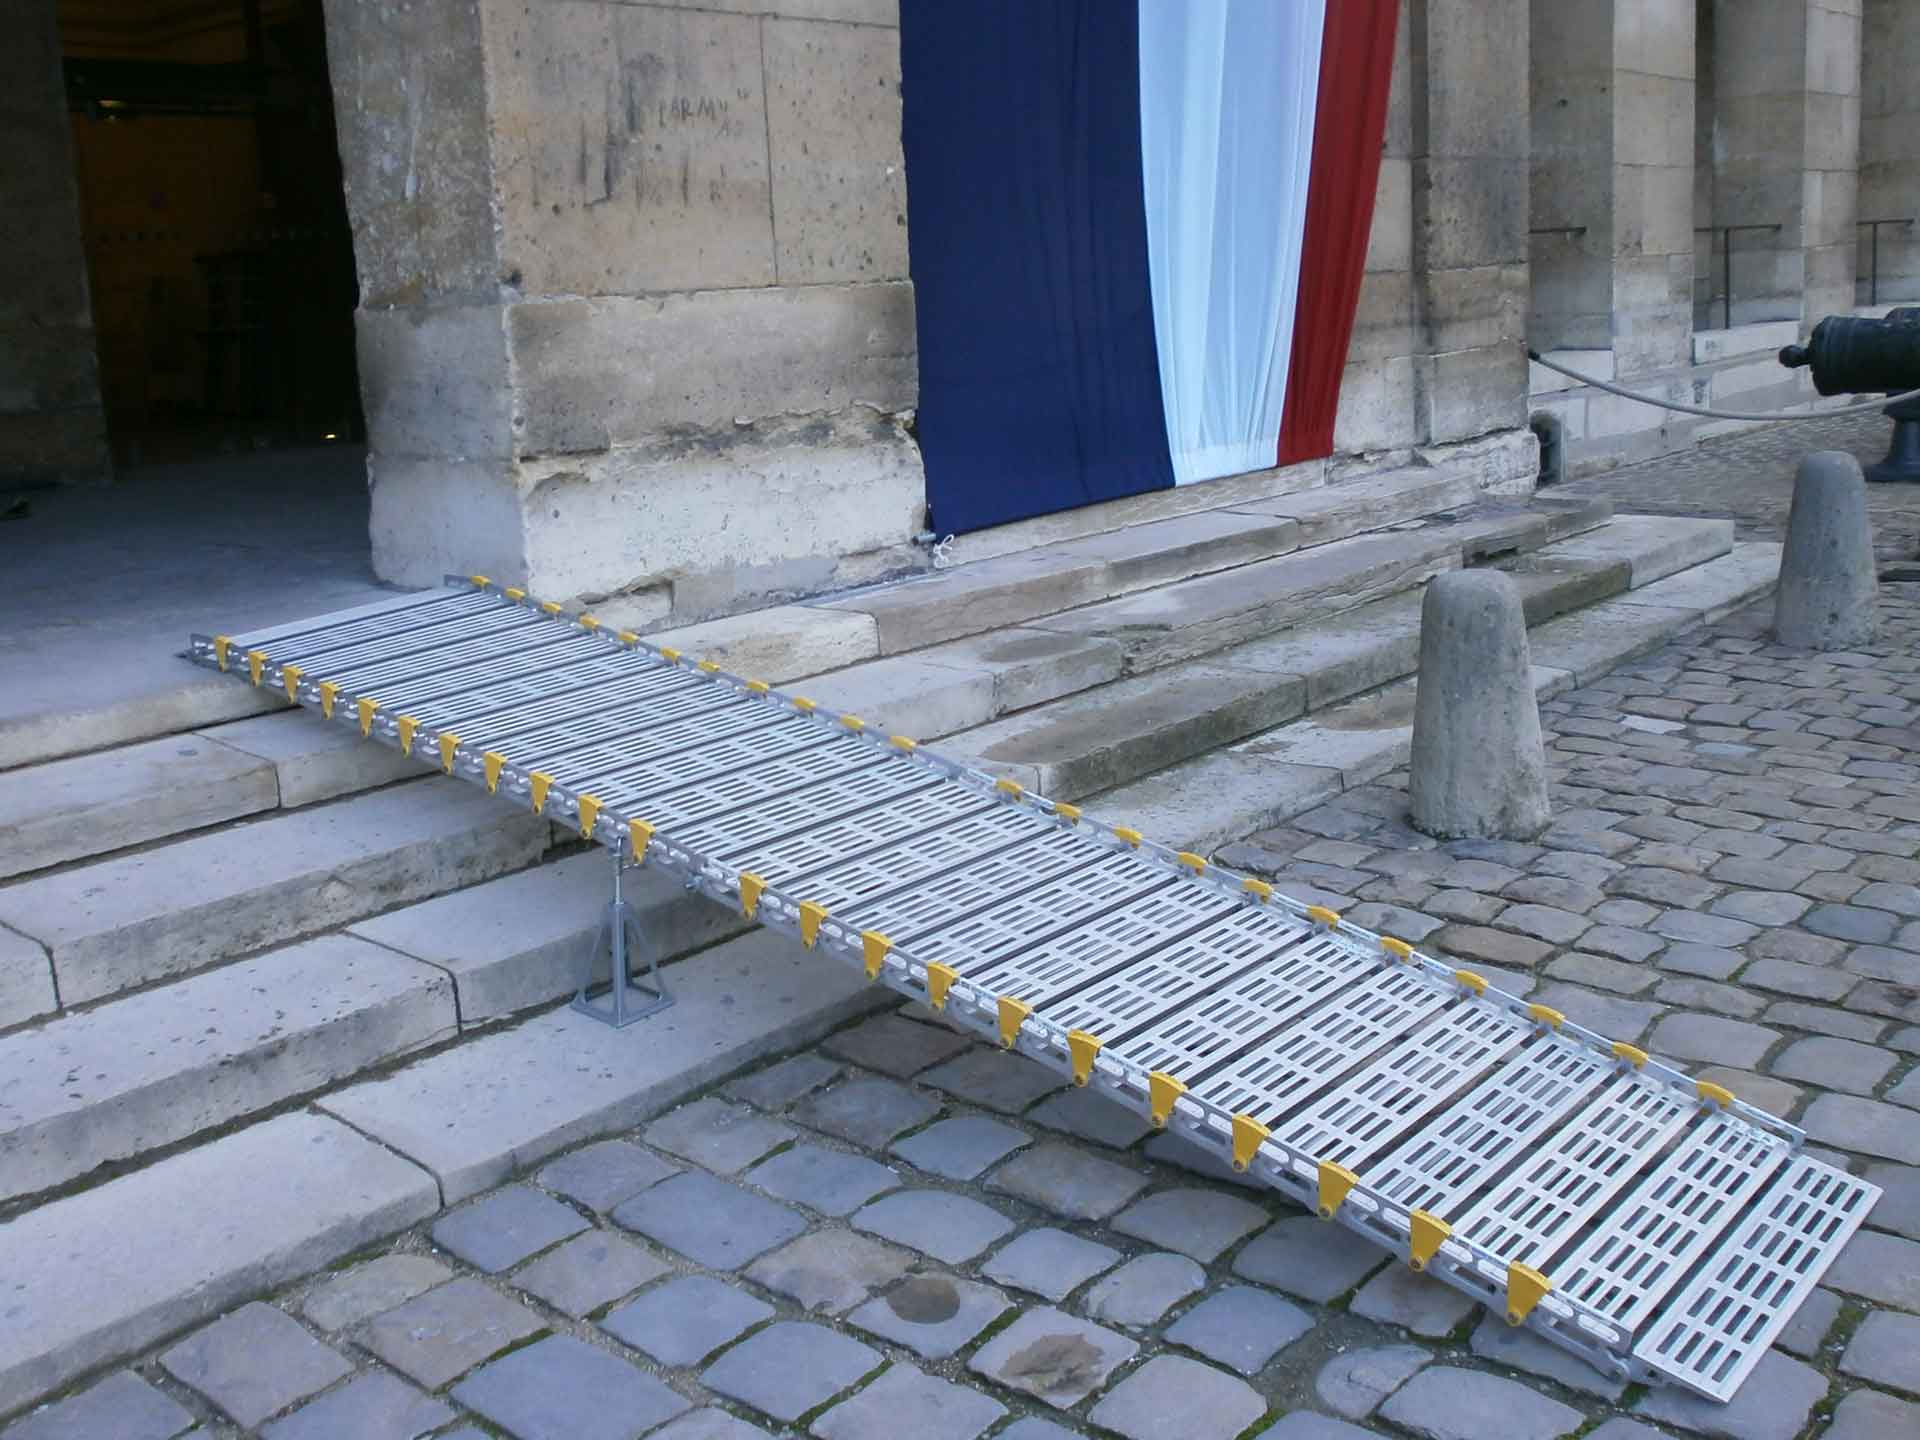 Aluminium ramp hire - wheelchairs and scooters for trade shows, events, etc.